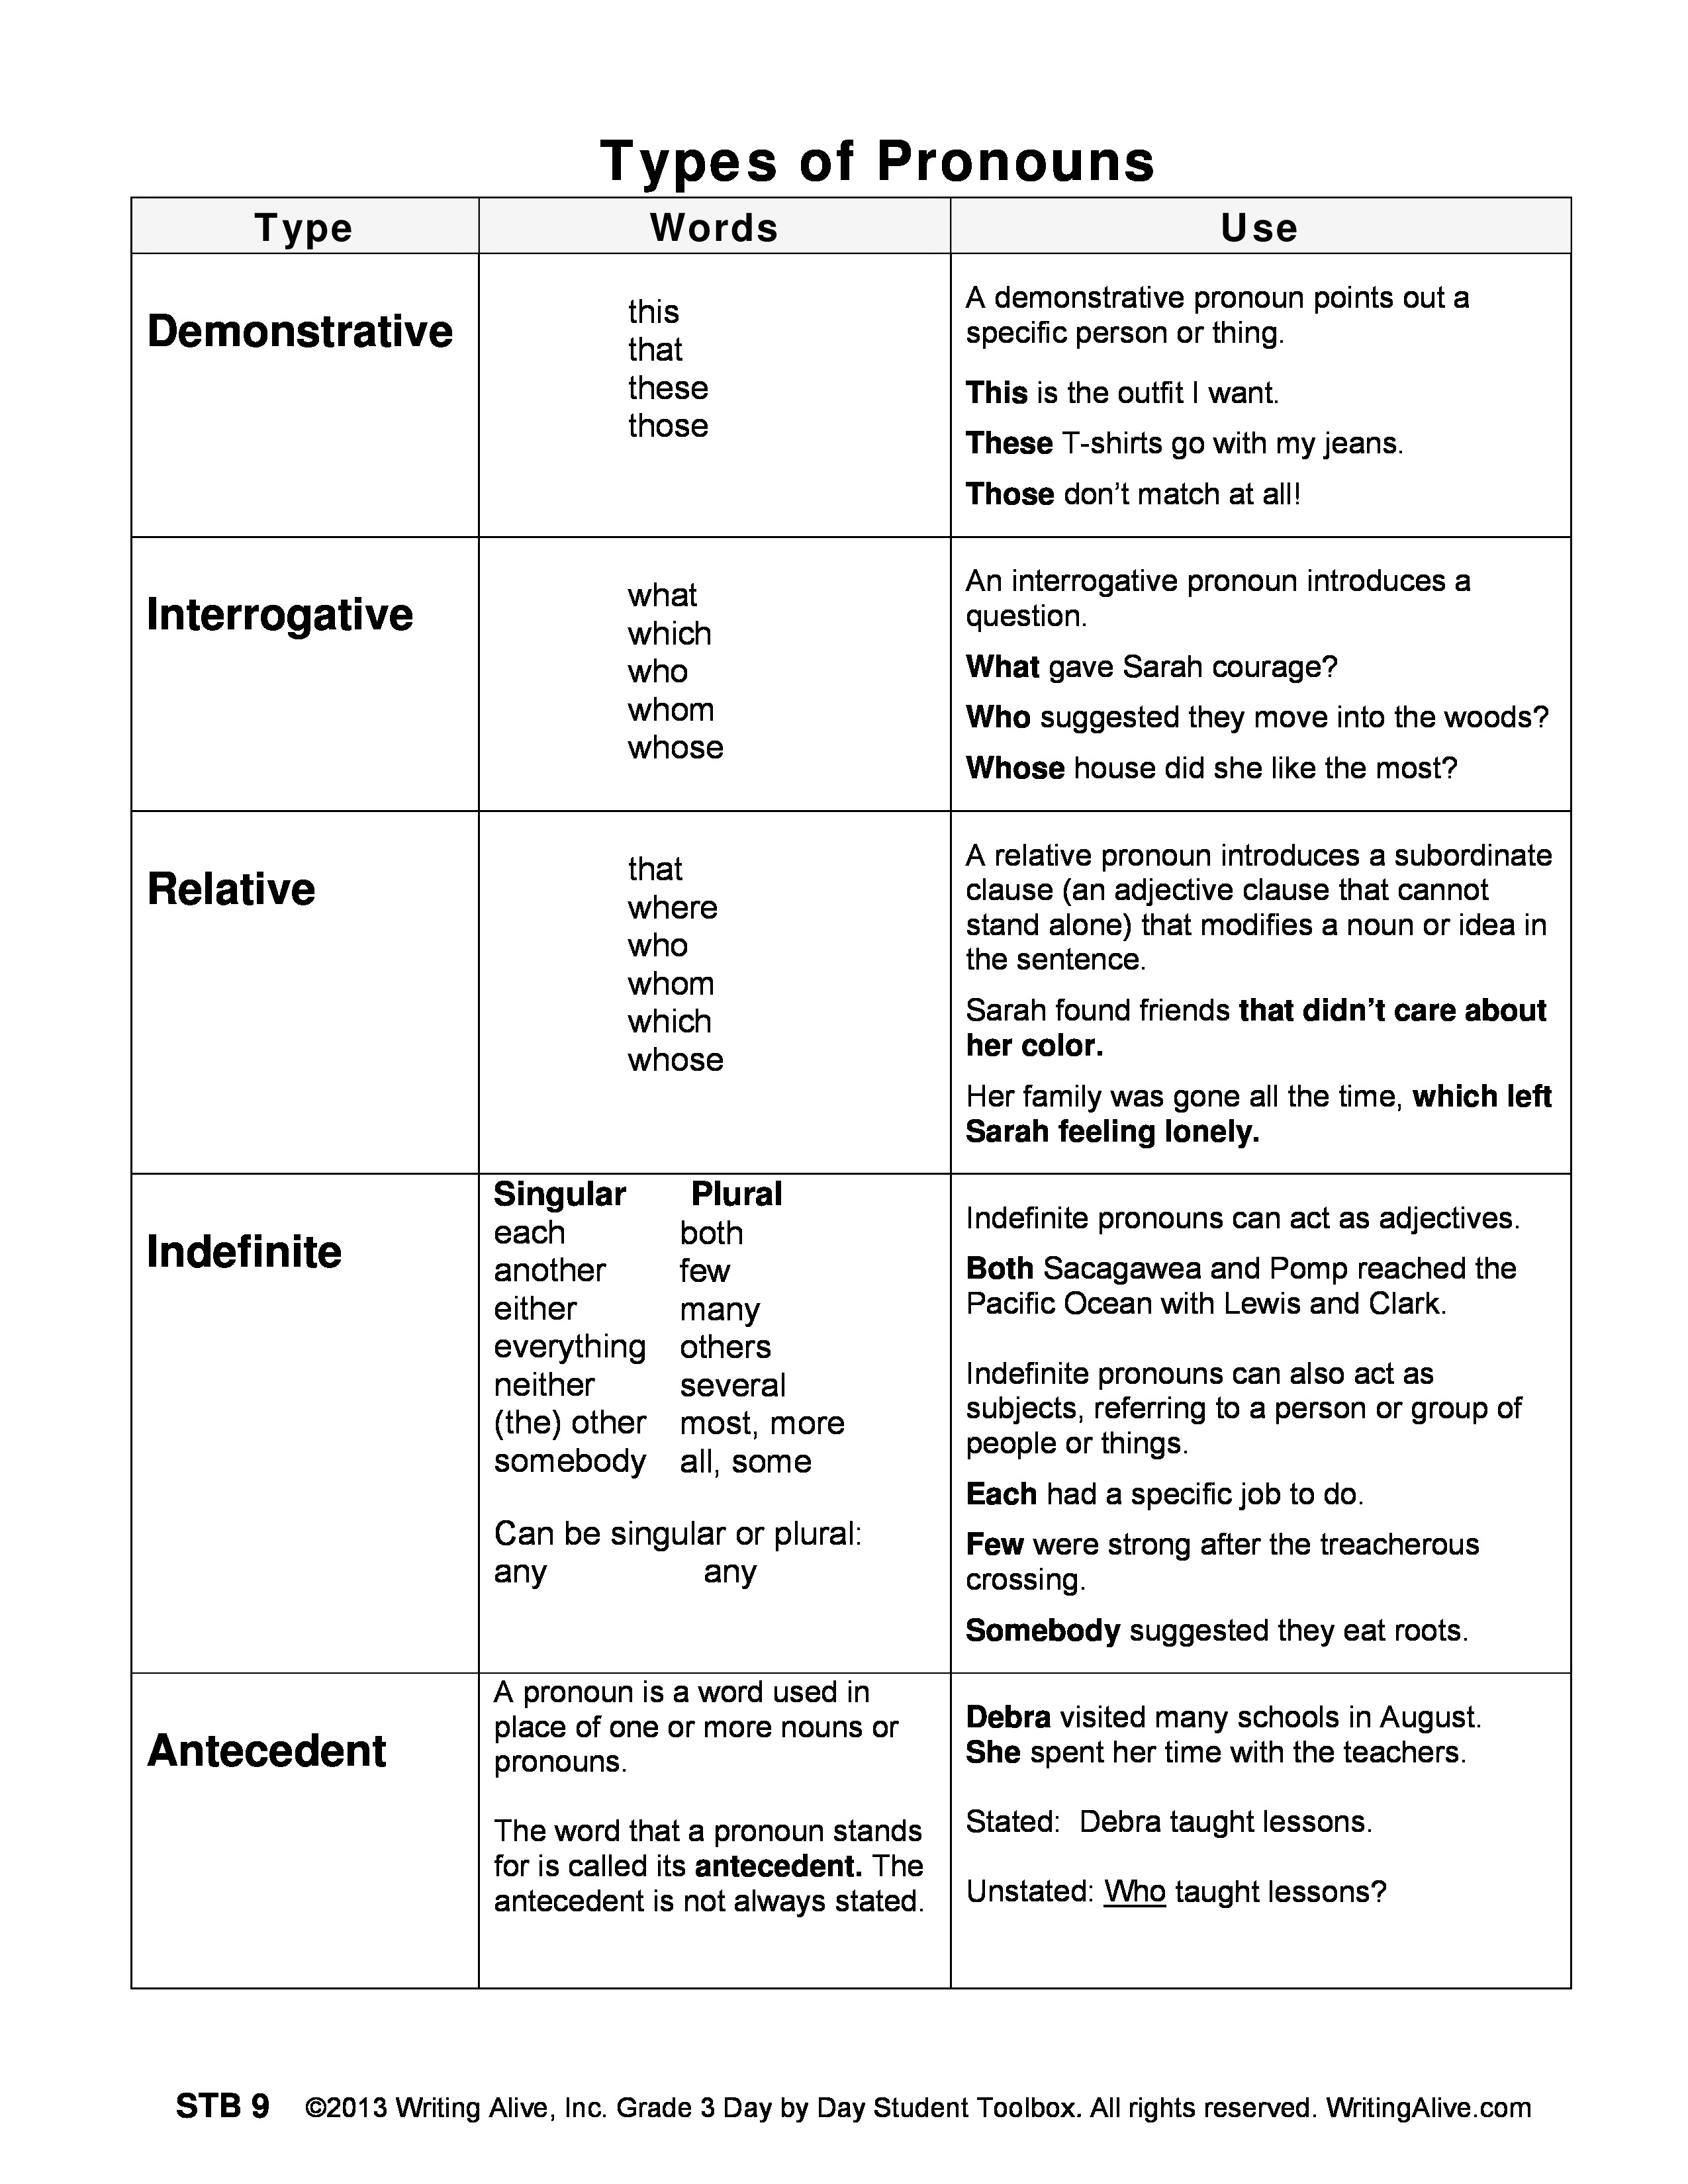 worksheet Types Of Pronouns Worksheet writing alive web applications 3 grammar types of pronouns